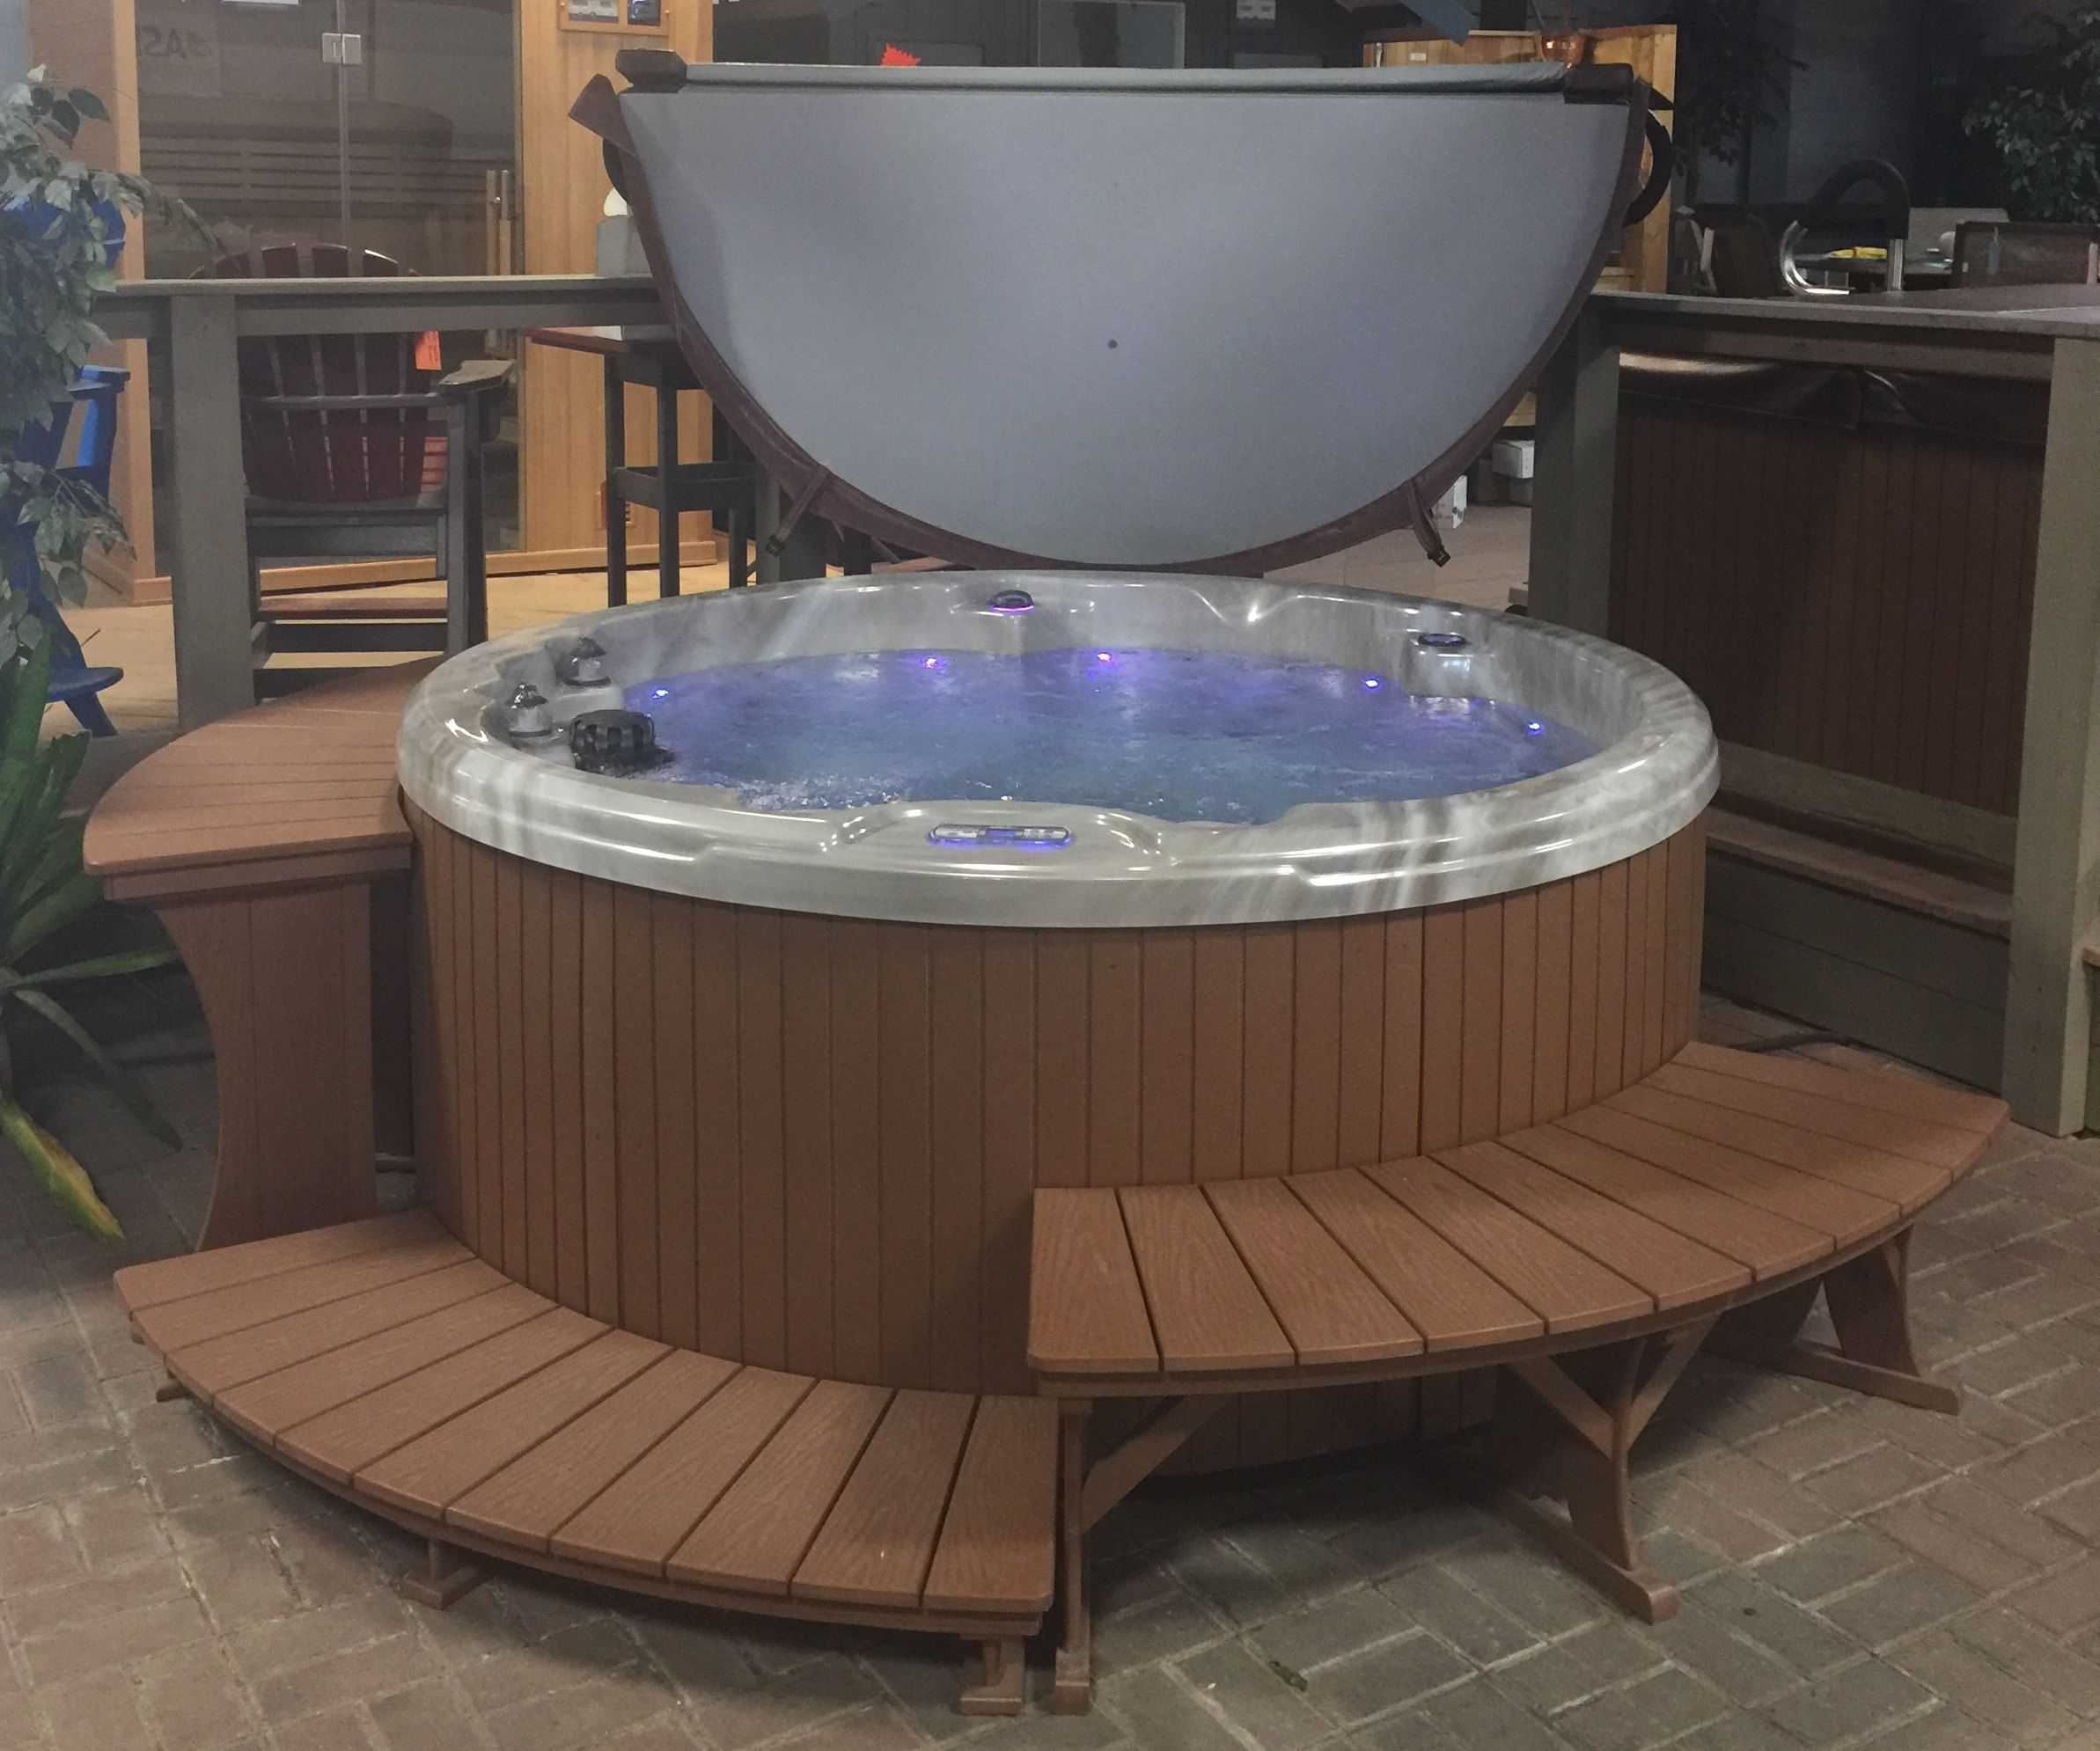 The Lovable Northstar Gs Built By Aspen Spas In St Louis Mo Shown With Option Surround Package From A B Accessories And Covermate F Spa Hot Tub Custom Build